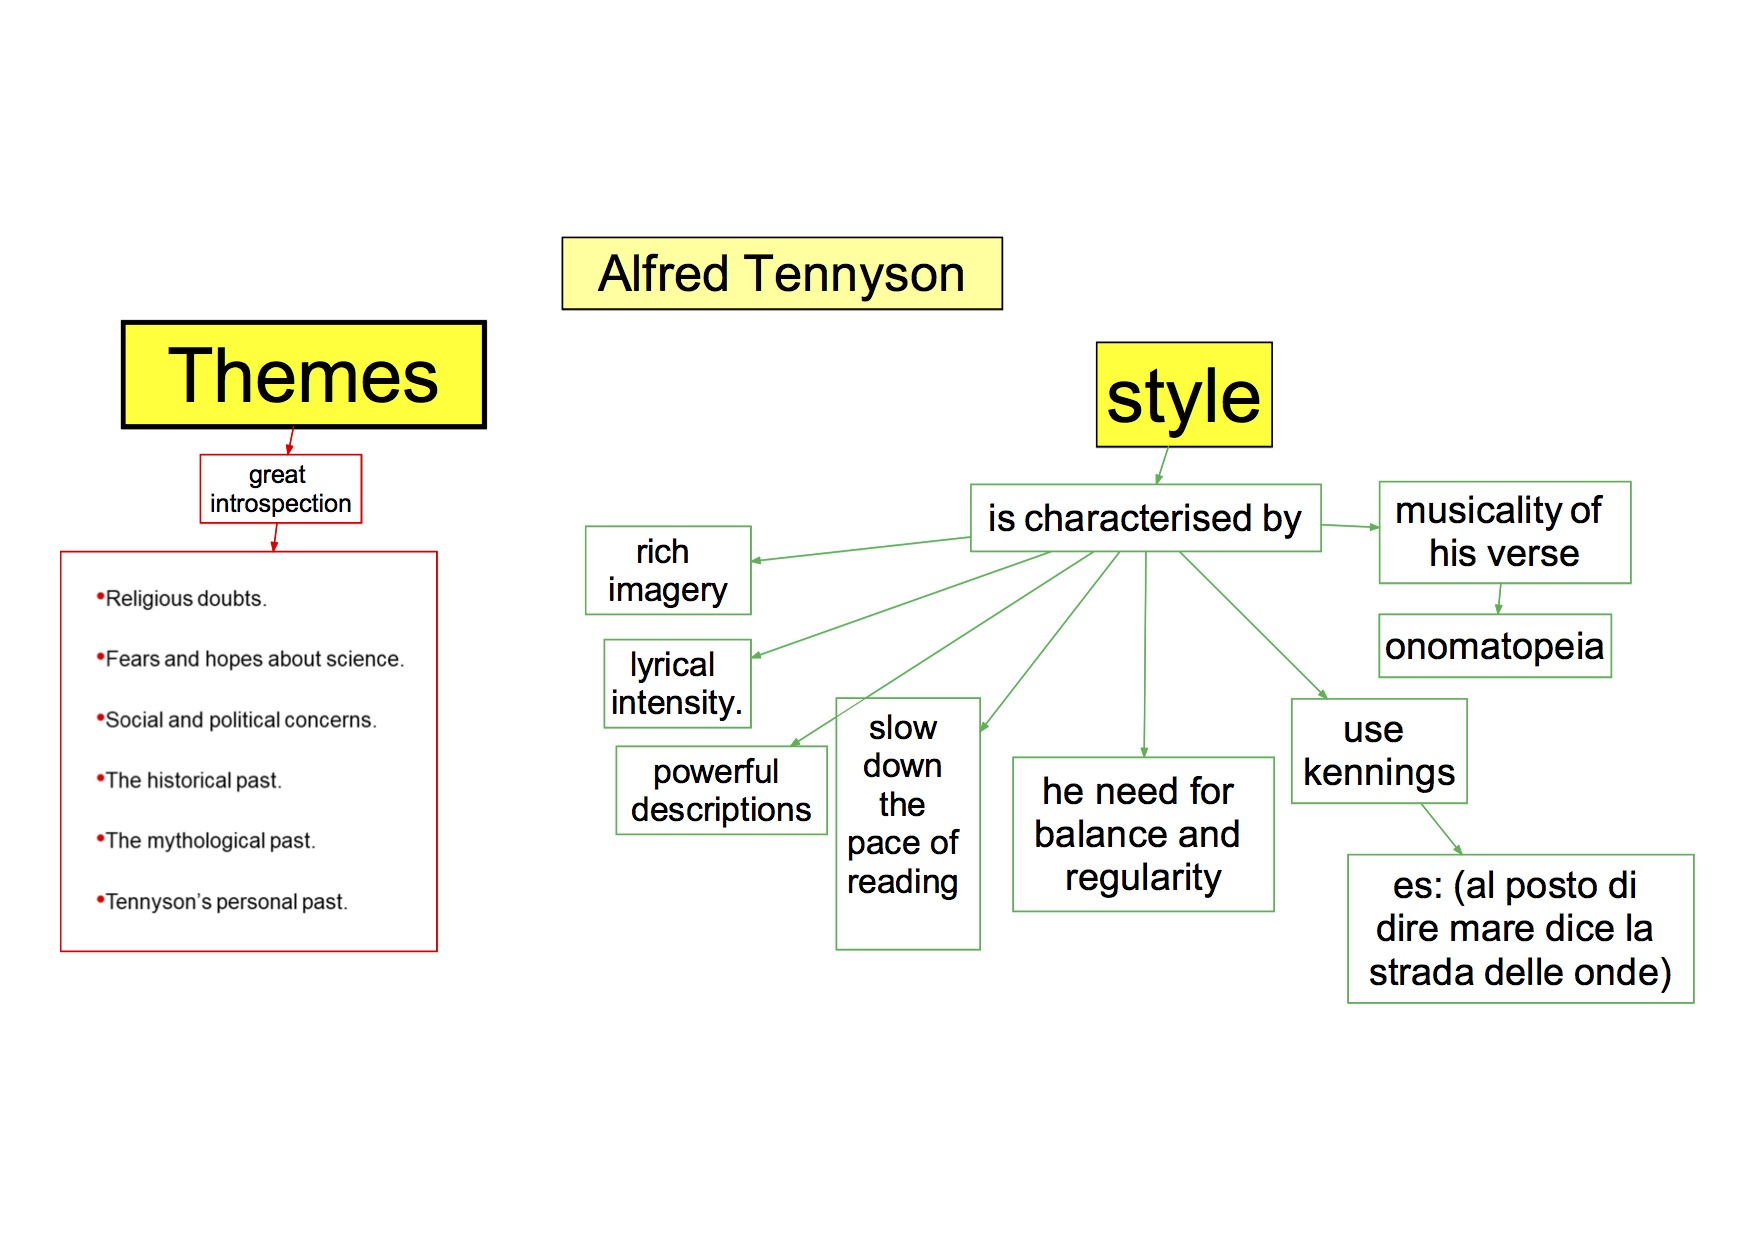 mappa concettuale visual map Inglese Alfred Tennyson style